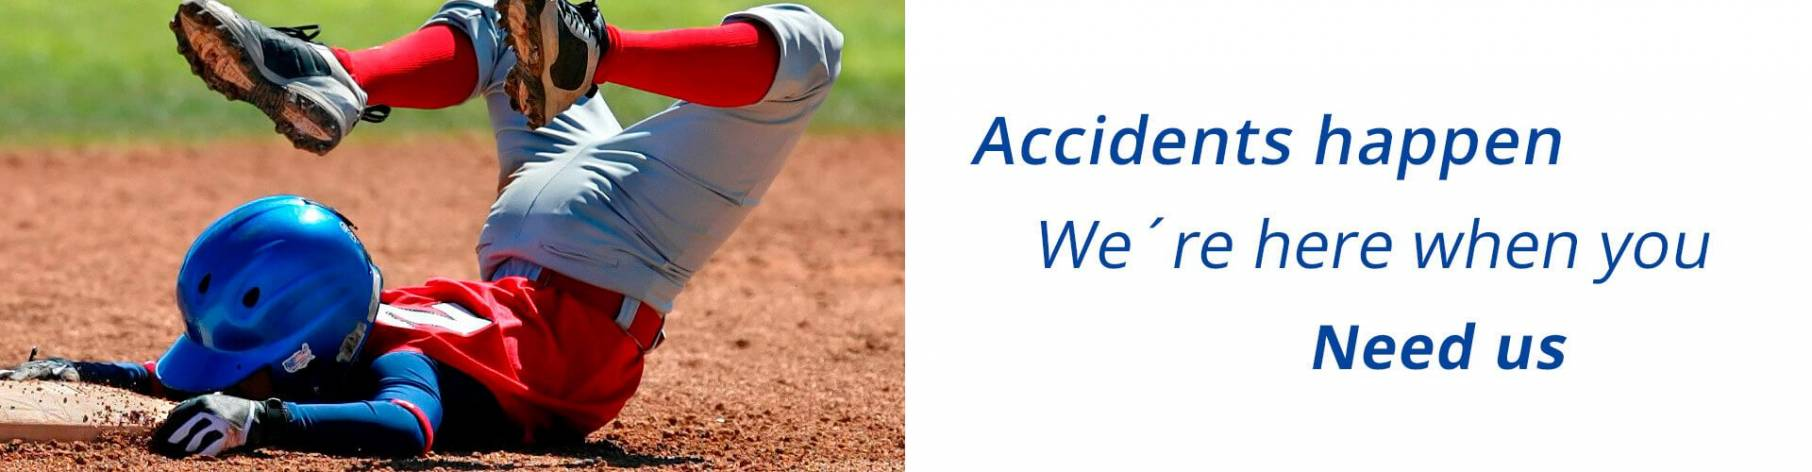 Accidents happen we ´ re here when you need us. Available 24/7 For Emergencies